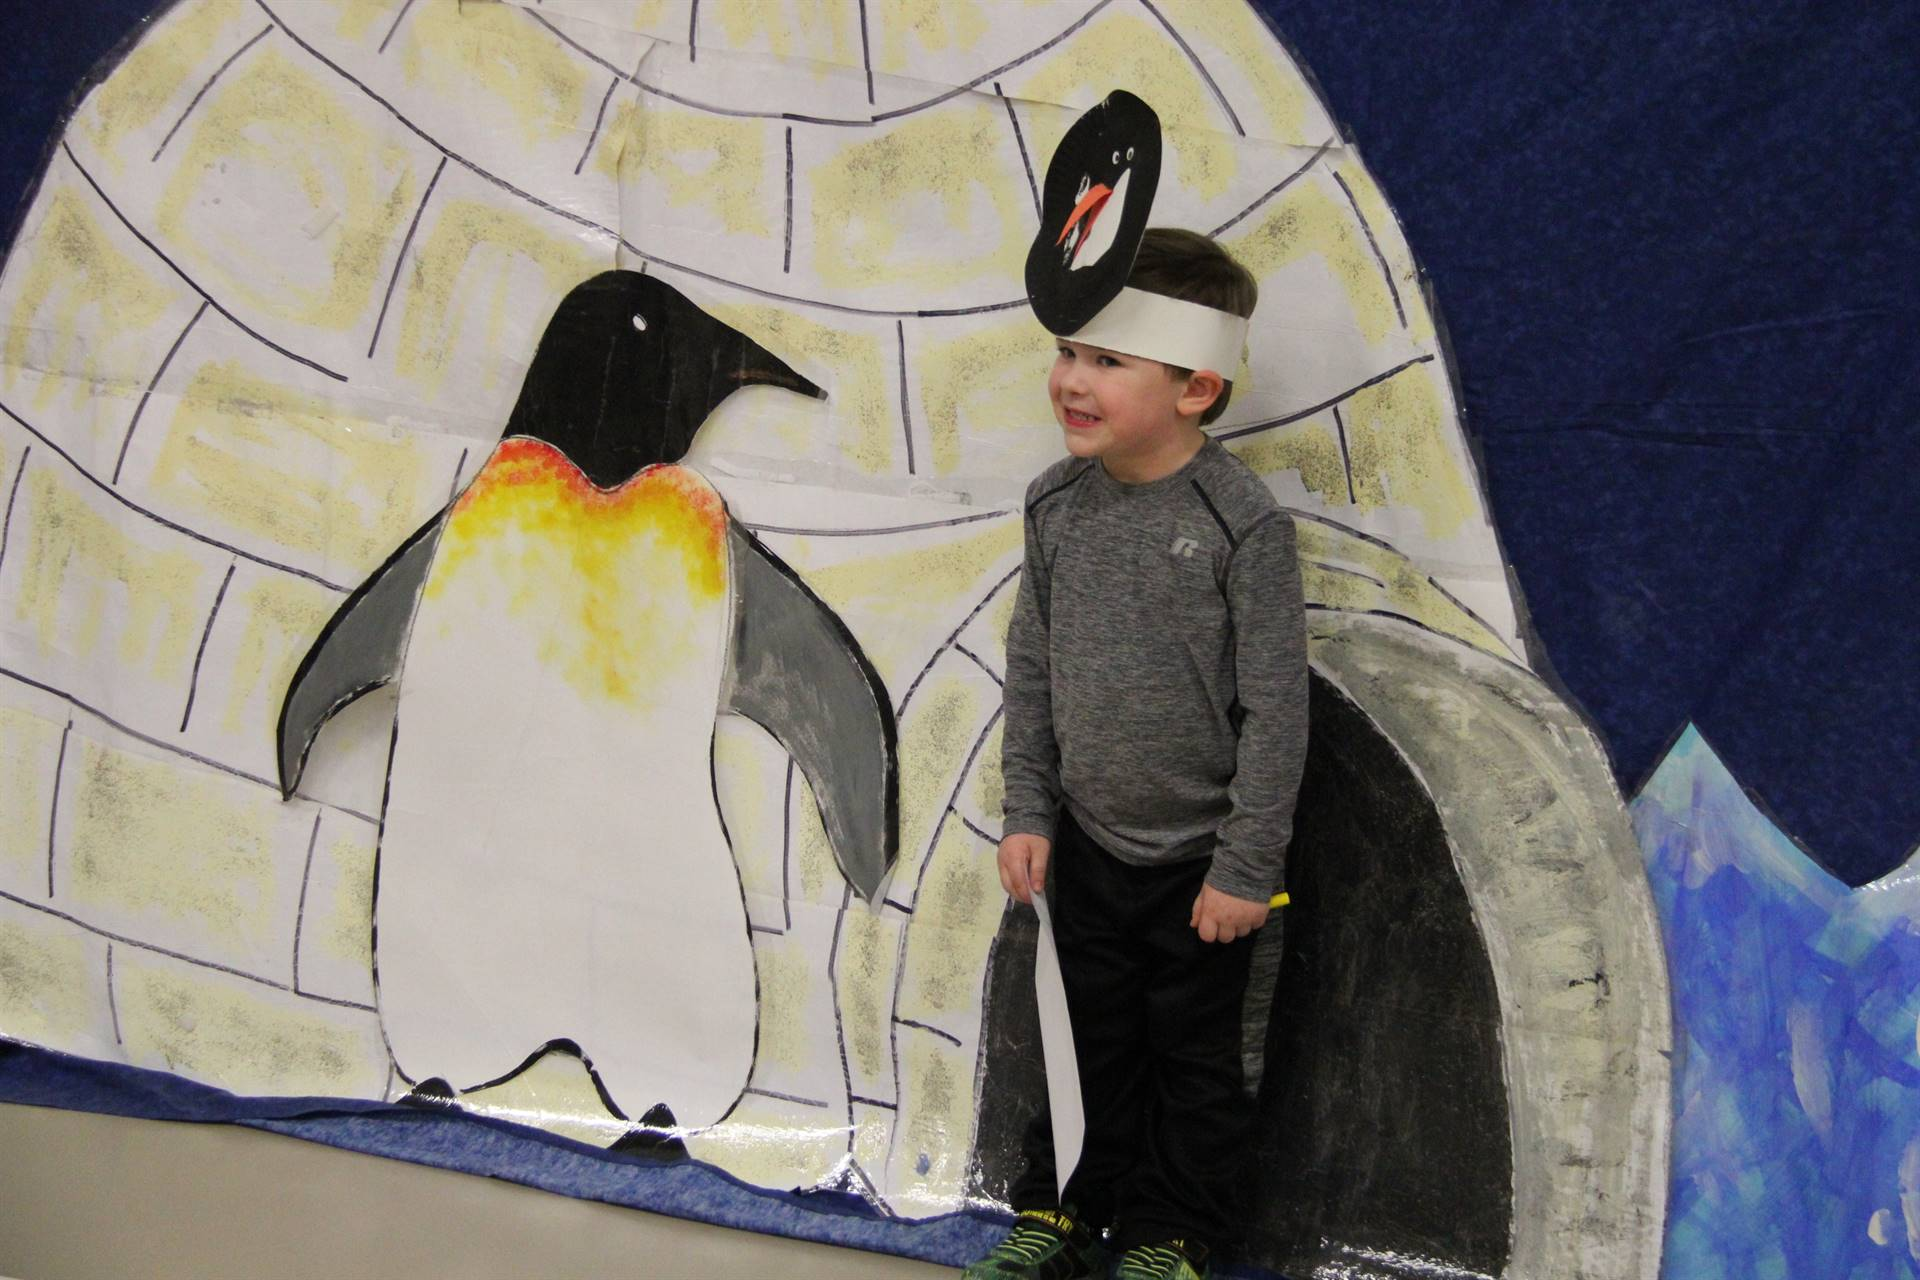 another student standing next to penguin illustration